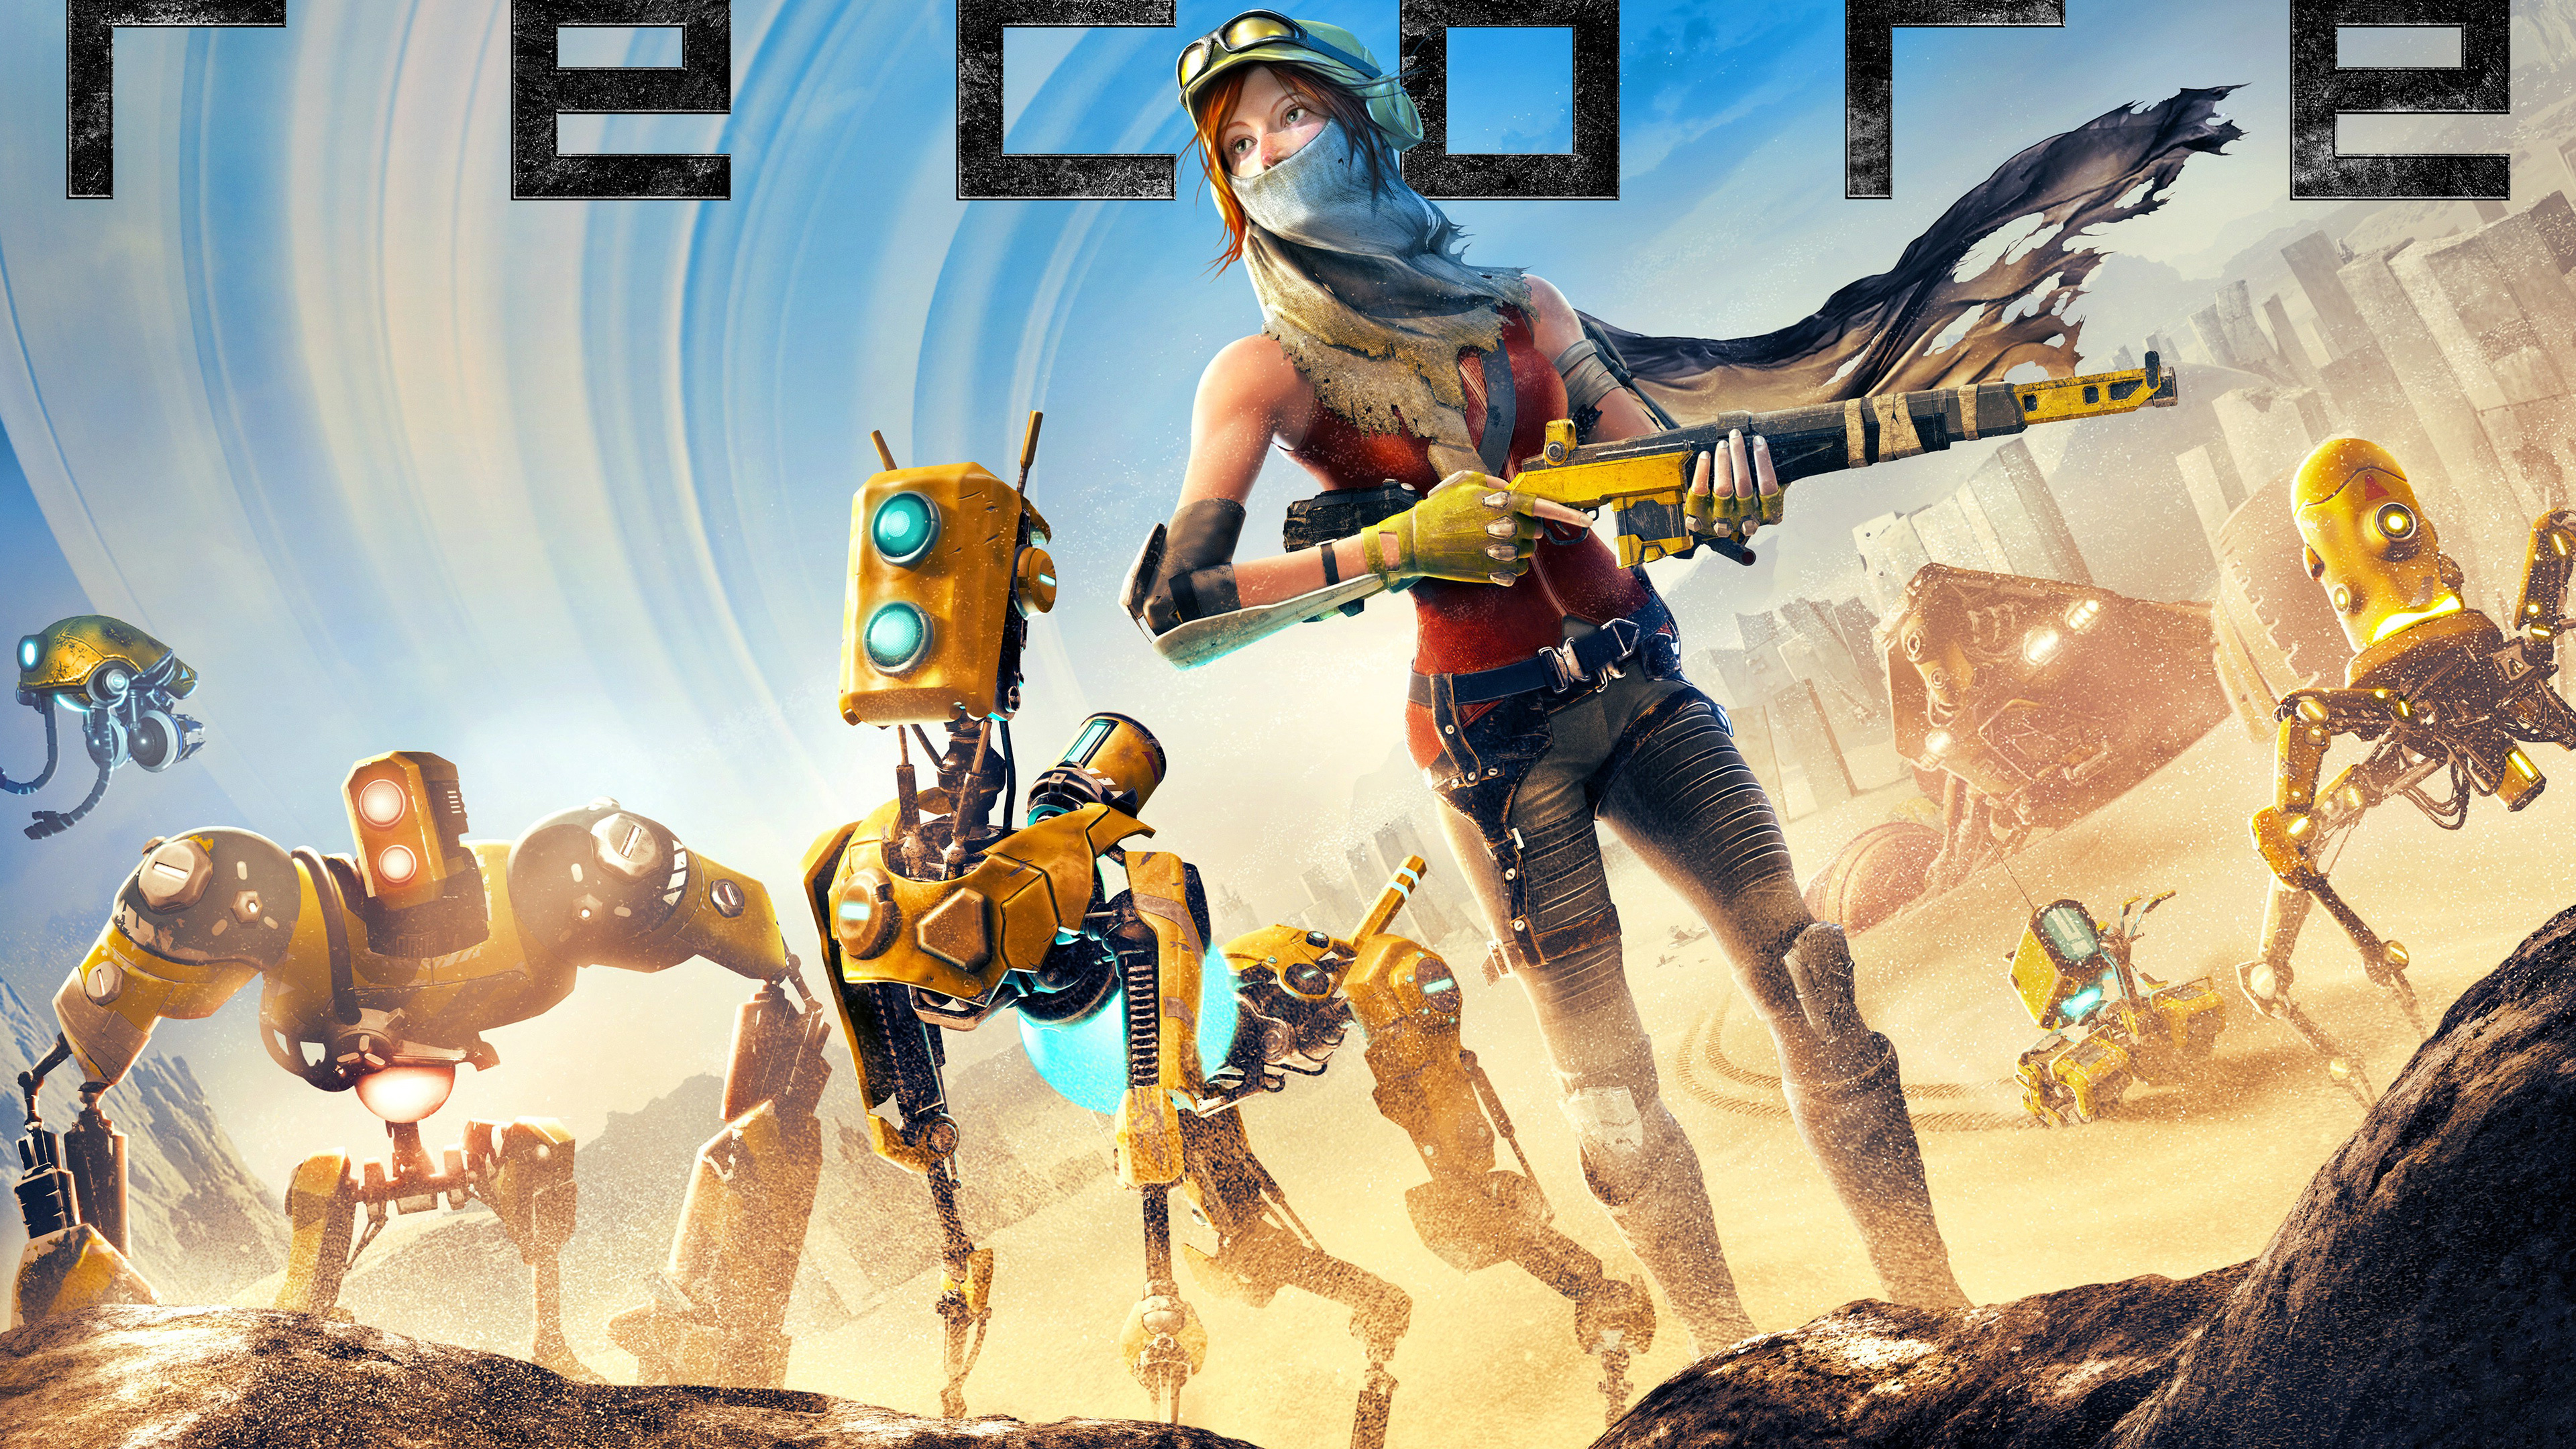 2016 recore 4k 1536010720 - 2016 Recore 4k - xbox games wallpapers, recore wallpapers, ps games wallpapers, pc games wallpapers, games wallpapers